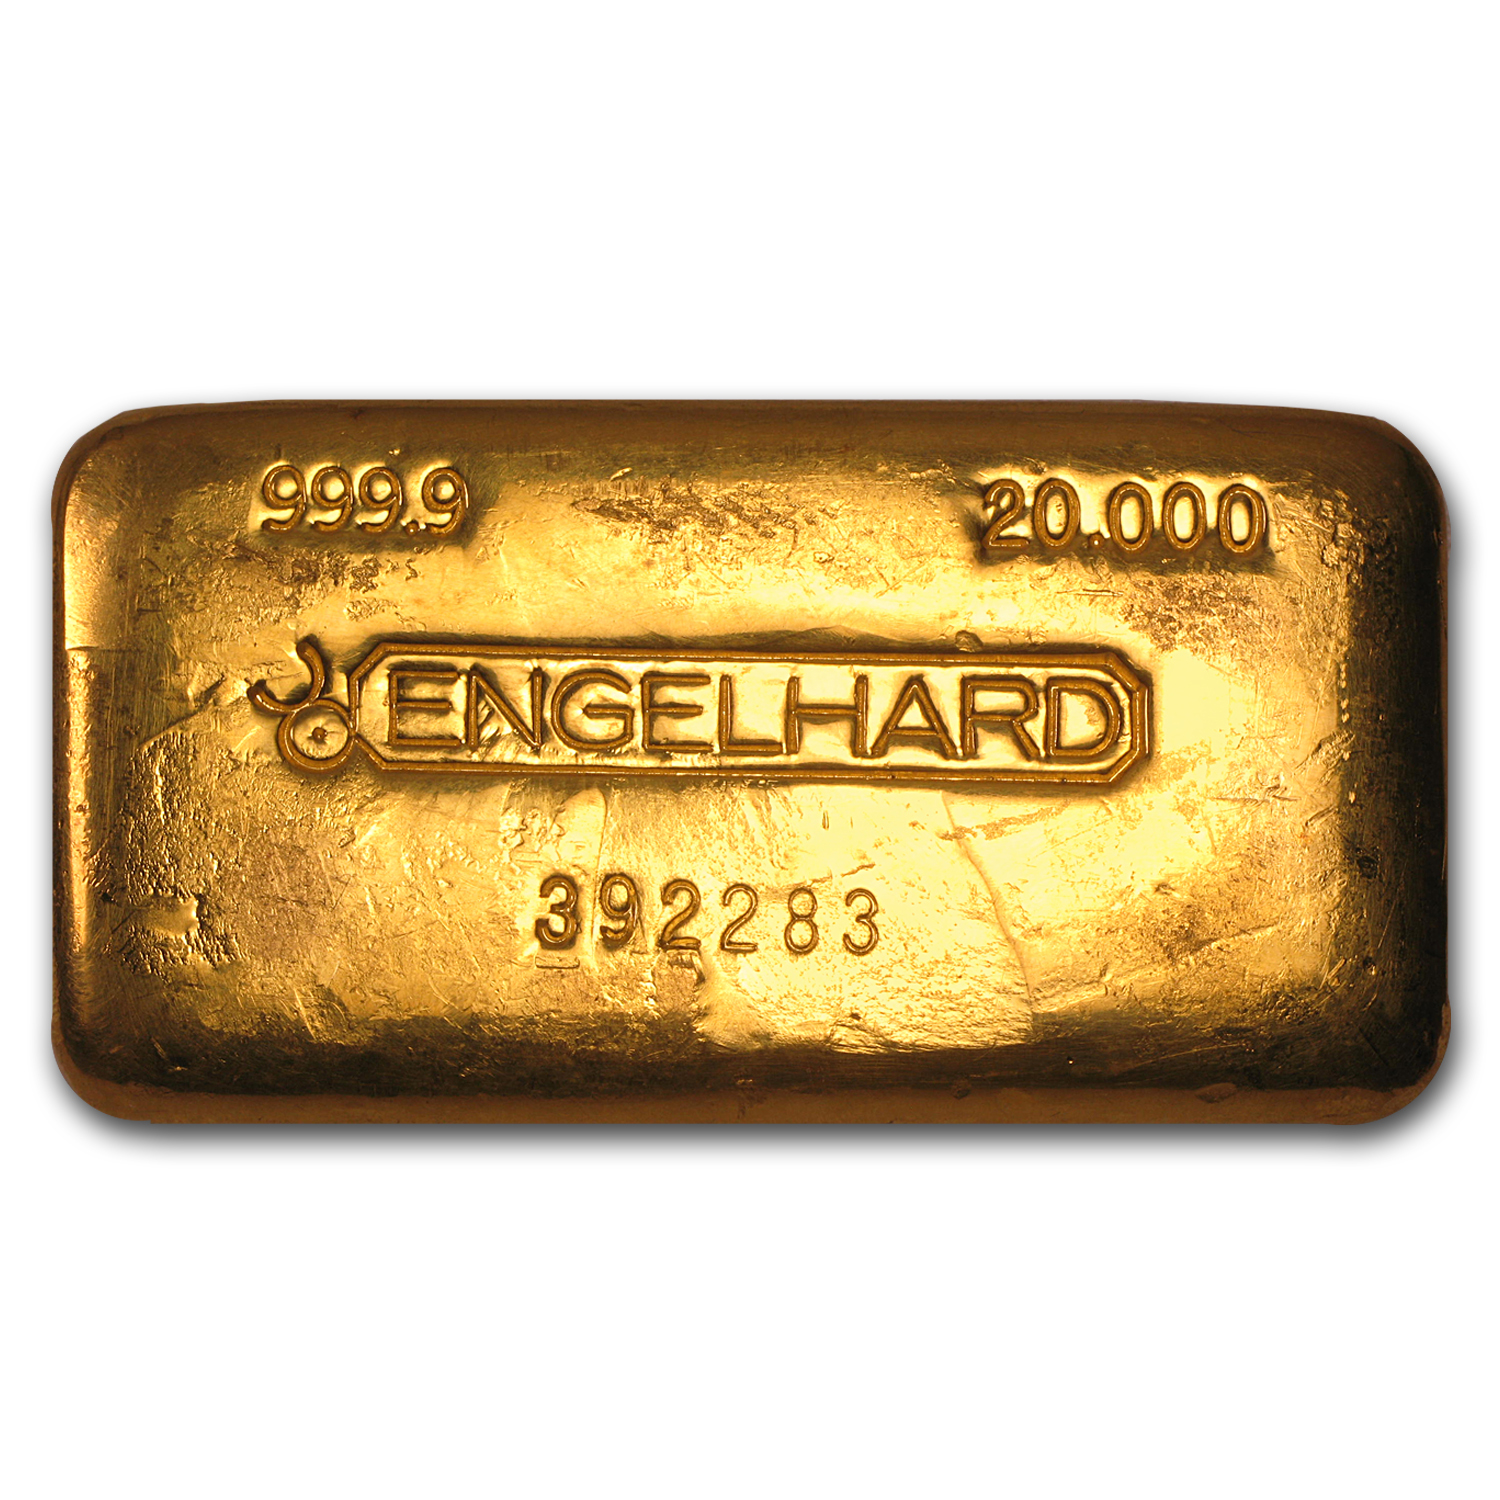 20 oz Gold Bar - Engelhard (Poured/Loaf-Style, Bull Logo)